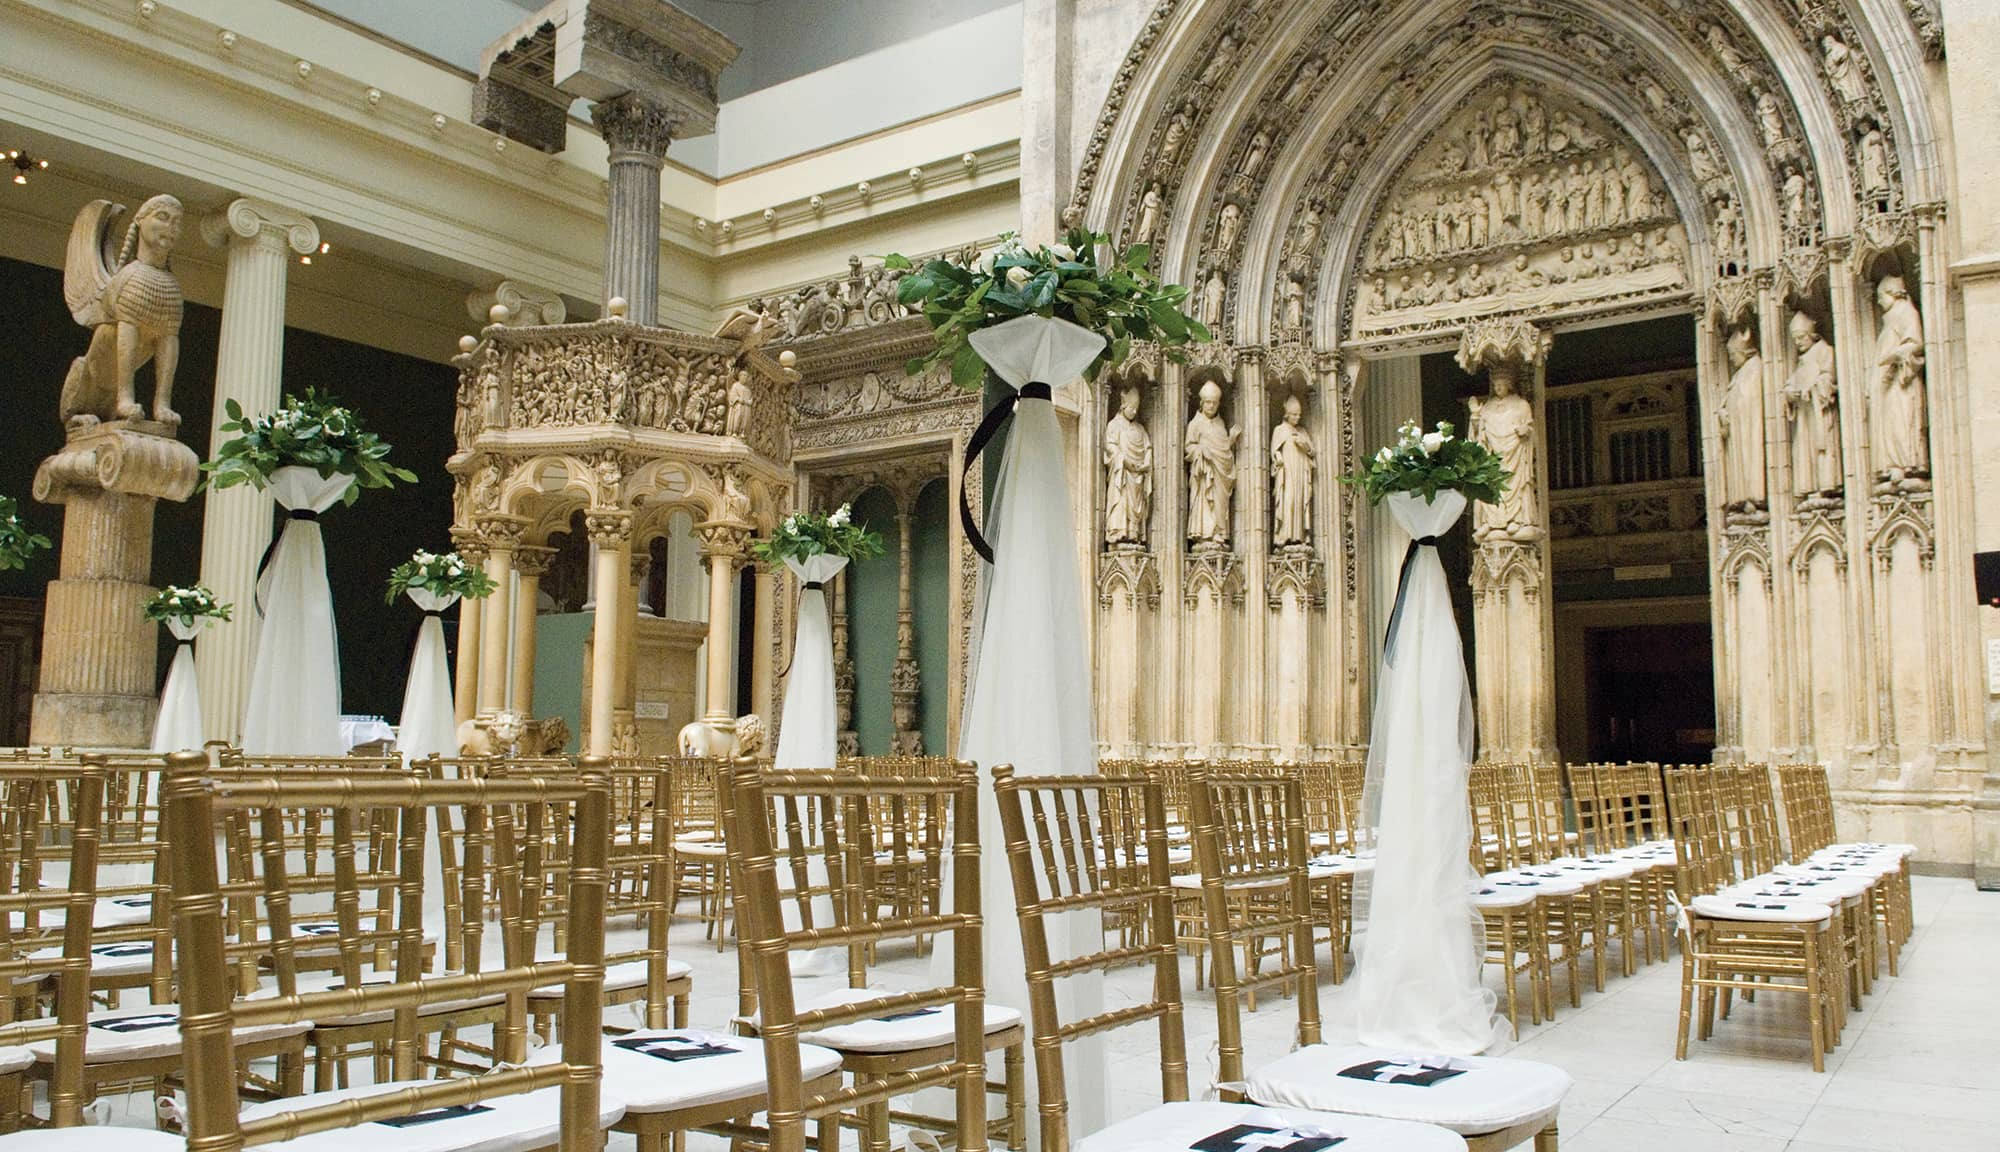 Chairs and decor set up for a wedding at Carnegie Hall